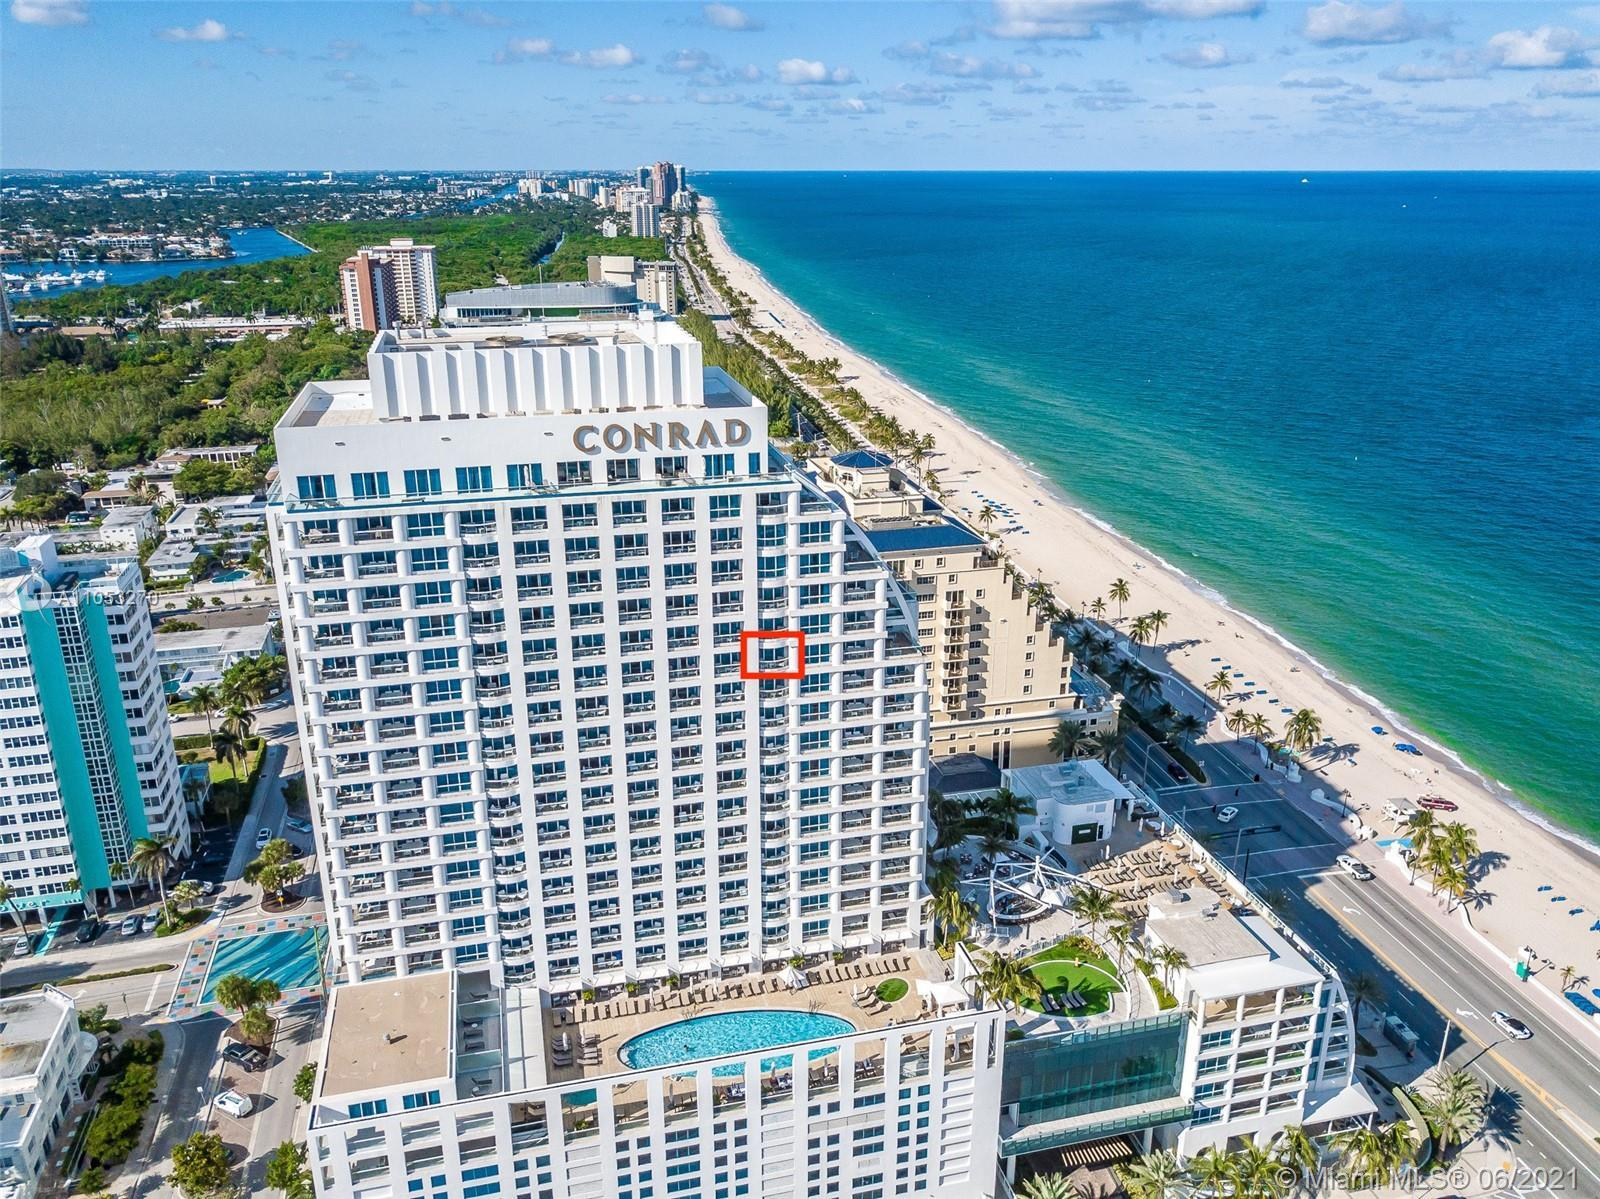 This spacious Junior Suite comes turn-key with ocean and intracoastal views. Enjoy full service and